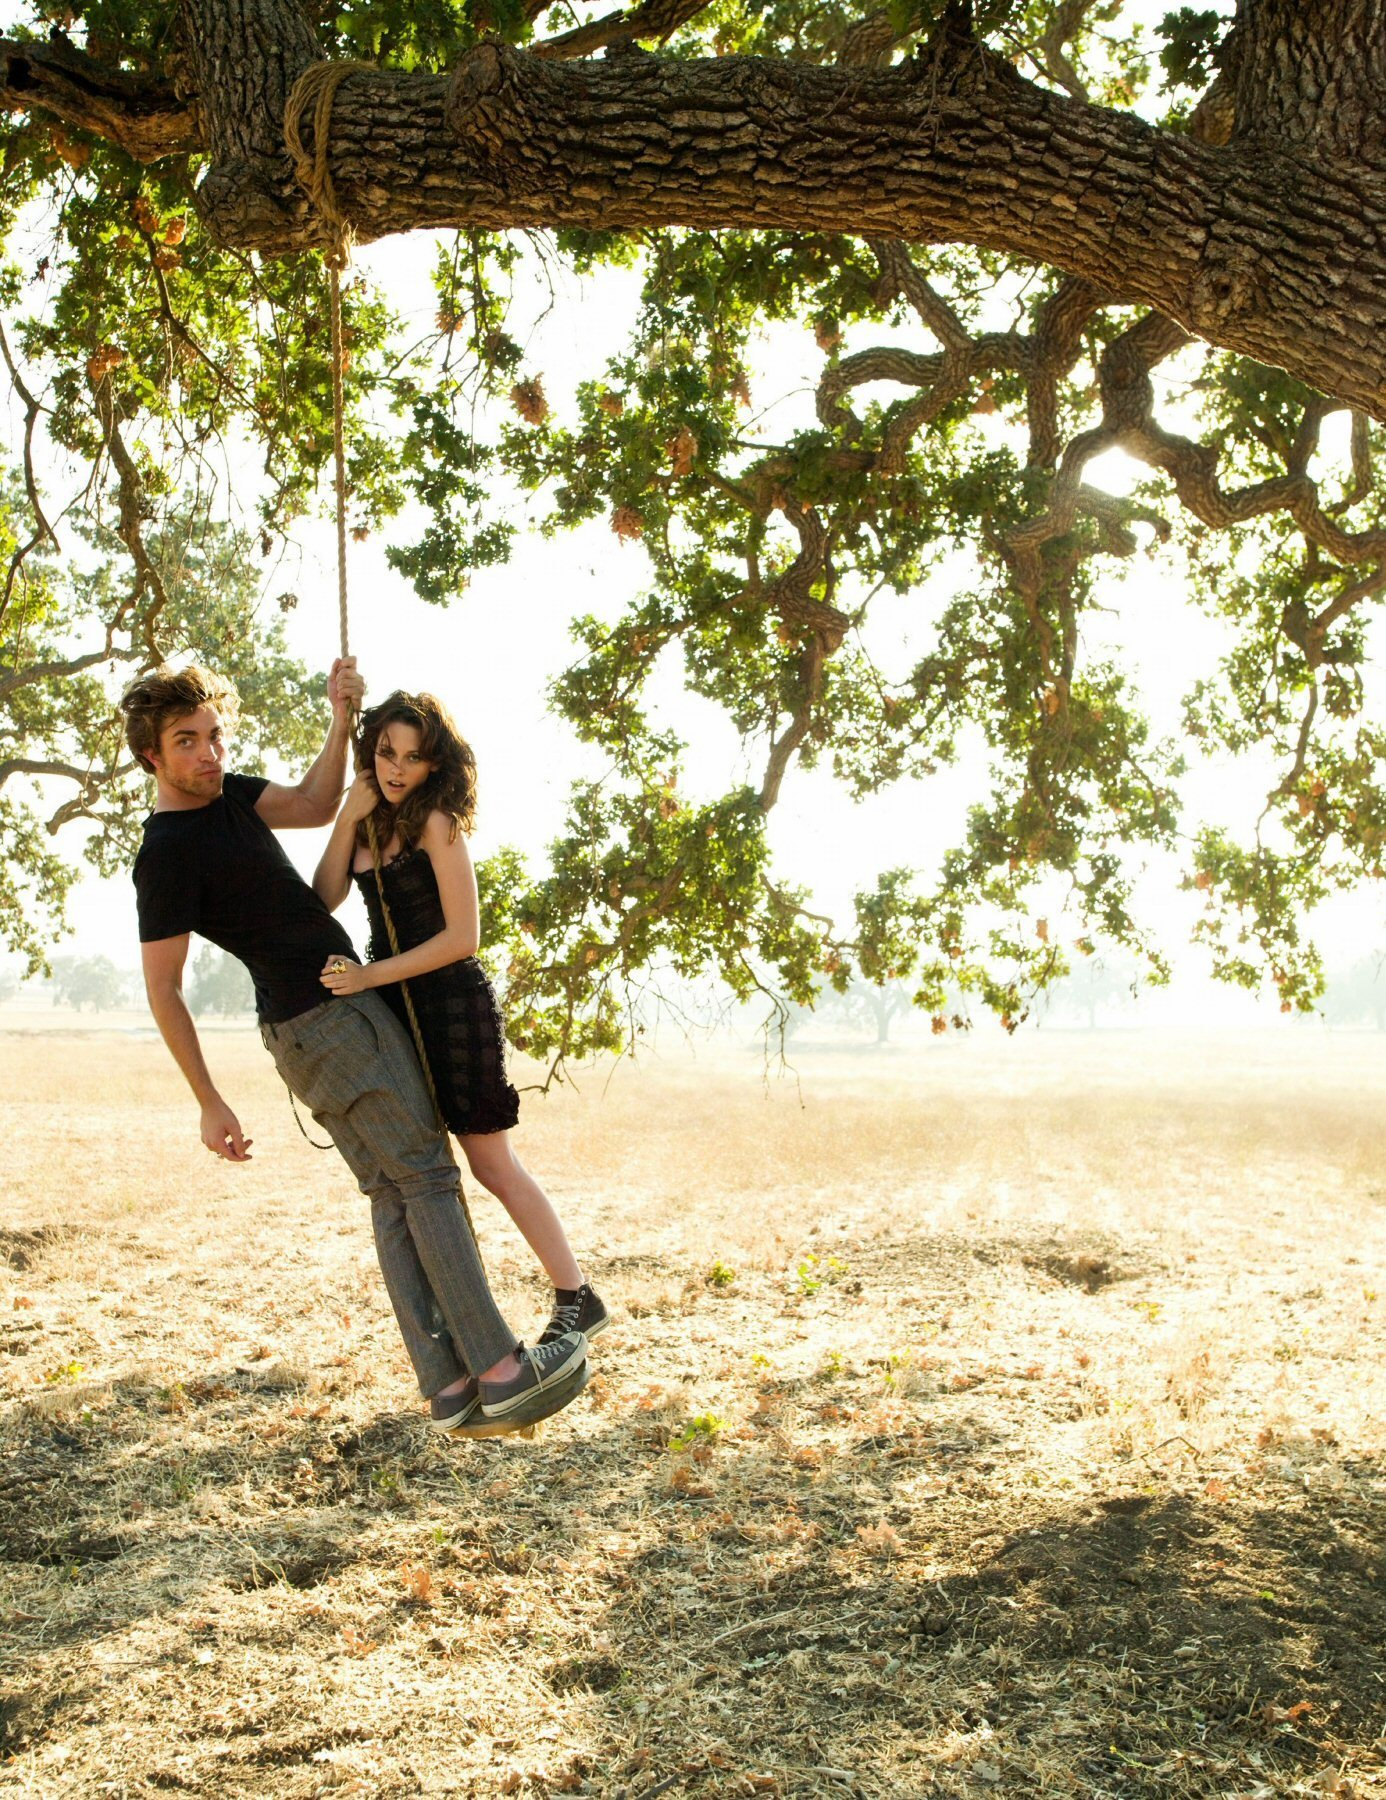 Robert Pattinson and Kristen Stewart - Vanity Fair photoshoot ...robert pattinson and kristen stewart